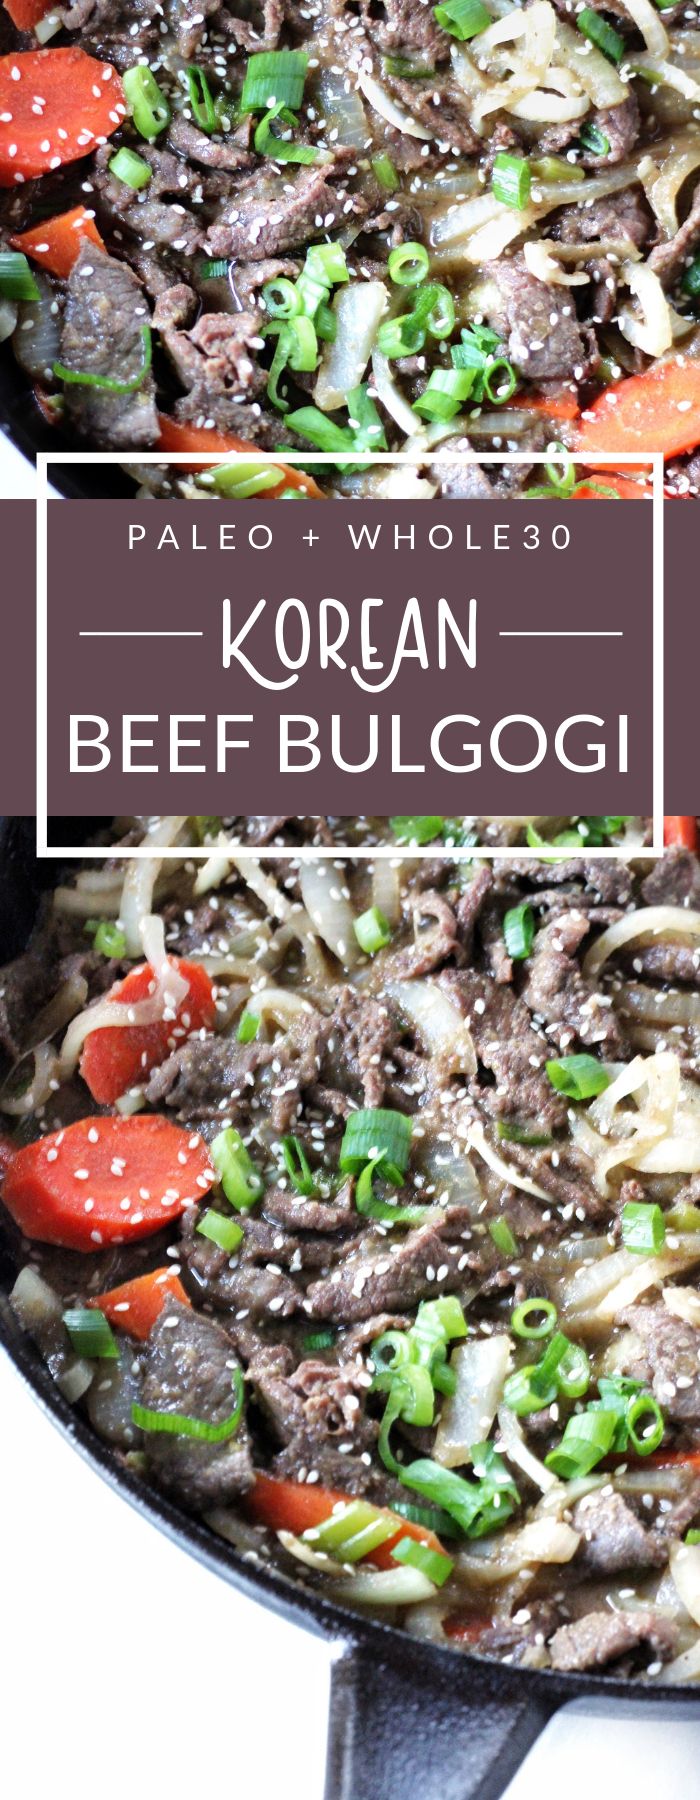 This Korean Beef Bulgogi comes from my friend Jean's cookbook, Korean Paleo: 80 Bold-Flavored, Gluten- and Grain-Free Recipes. This beef bulgogi is Whole30 compliant, paleo, and gluten-free.